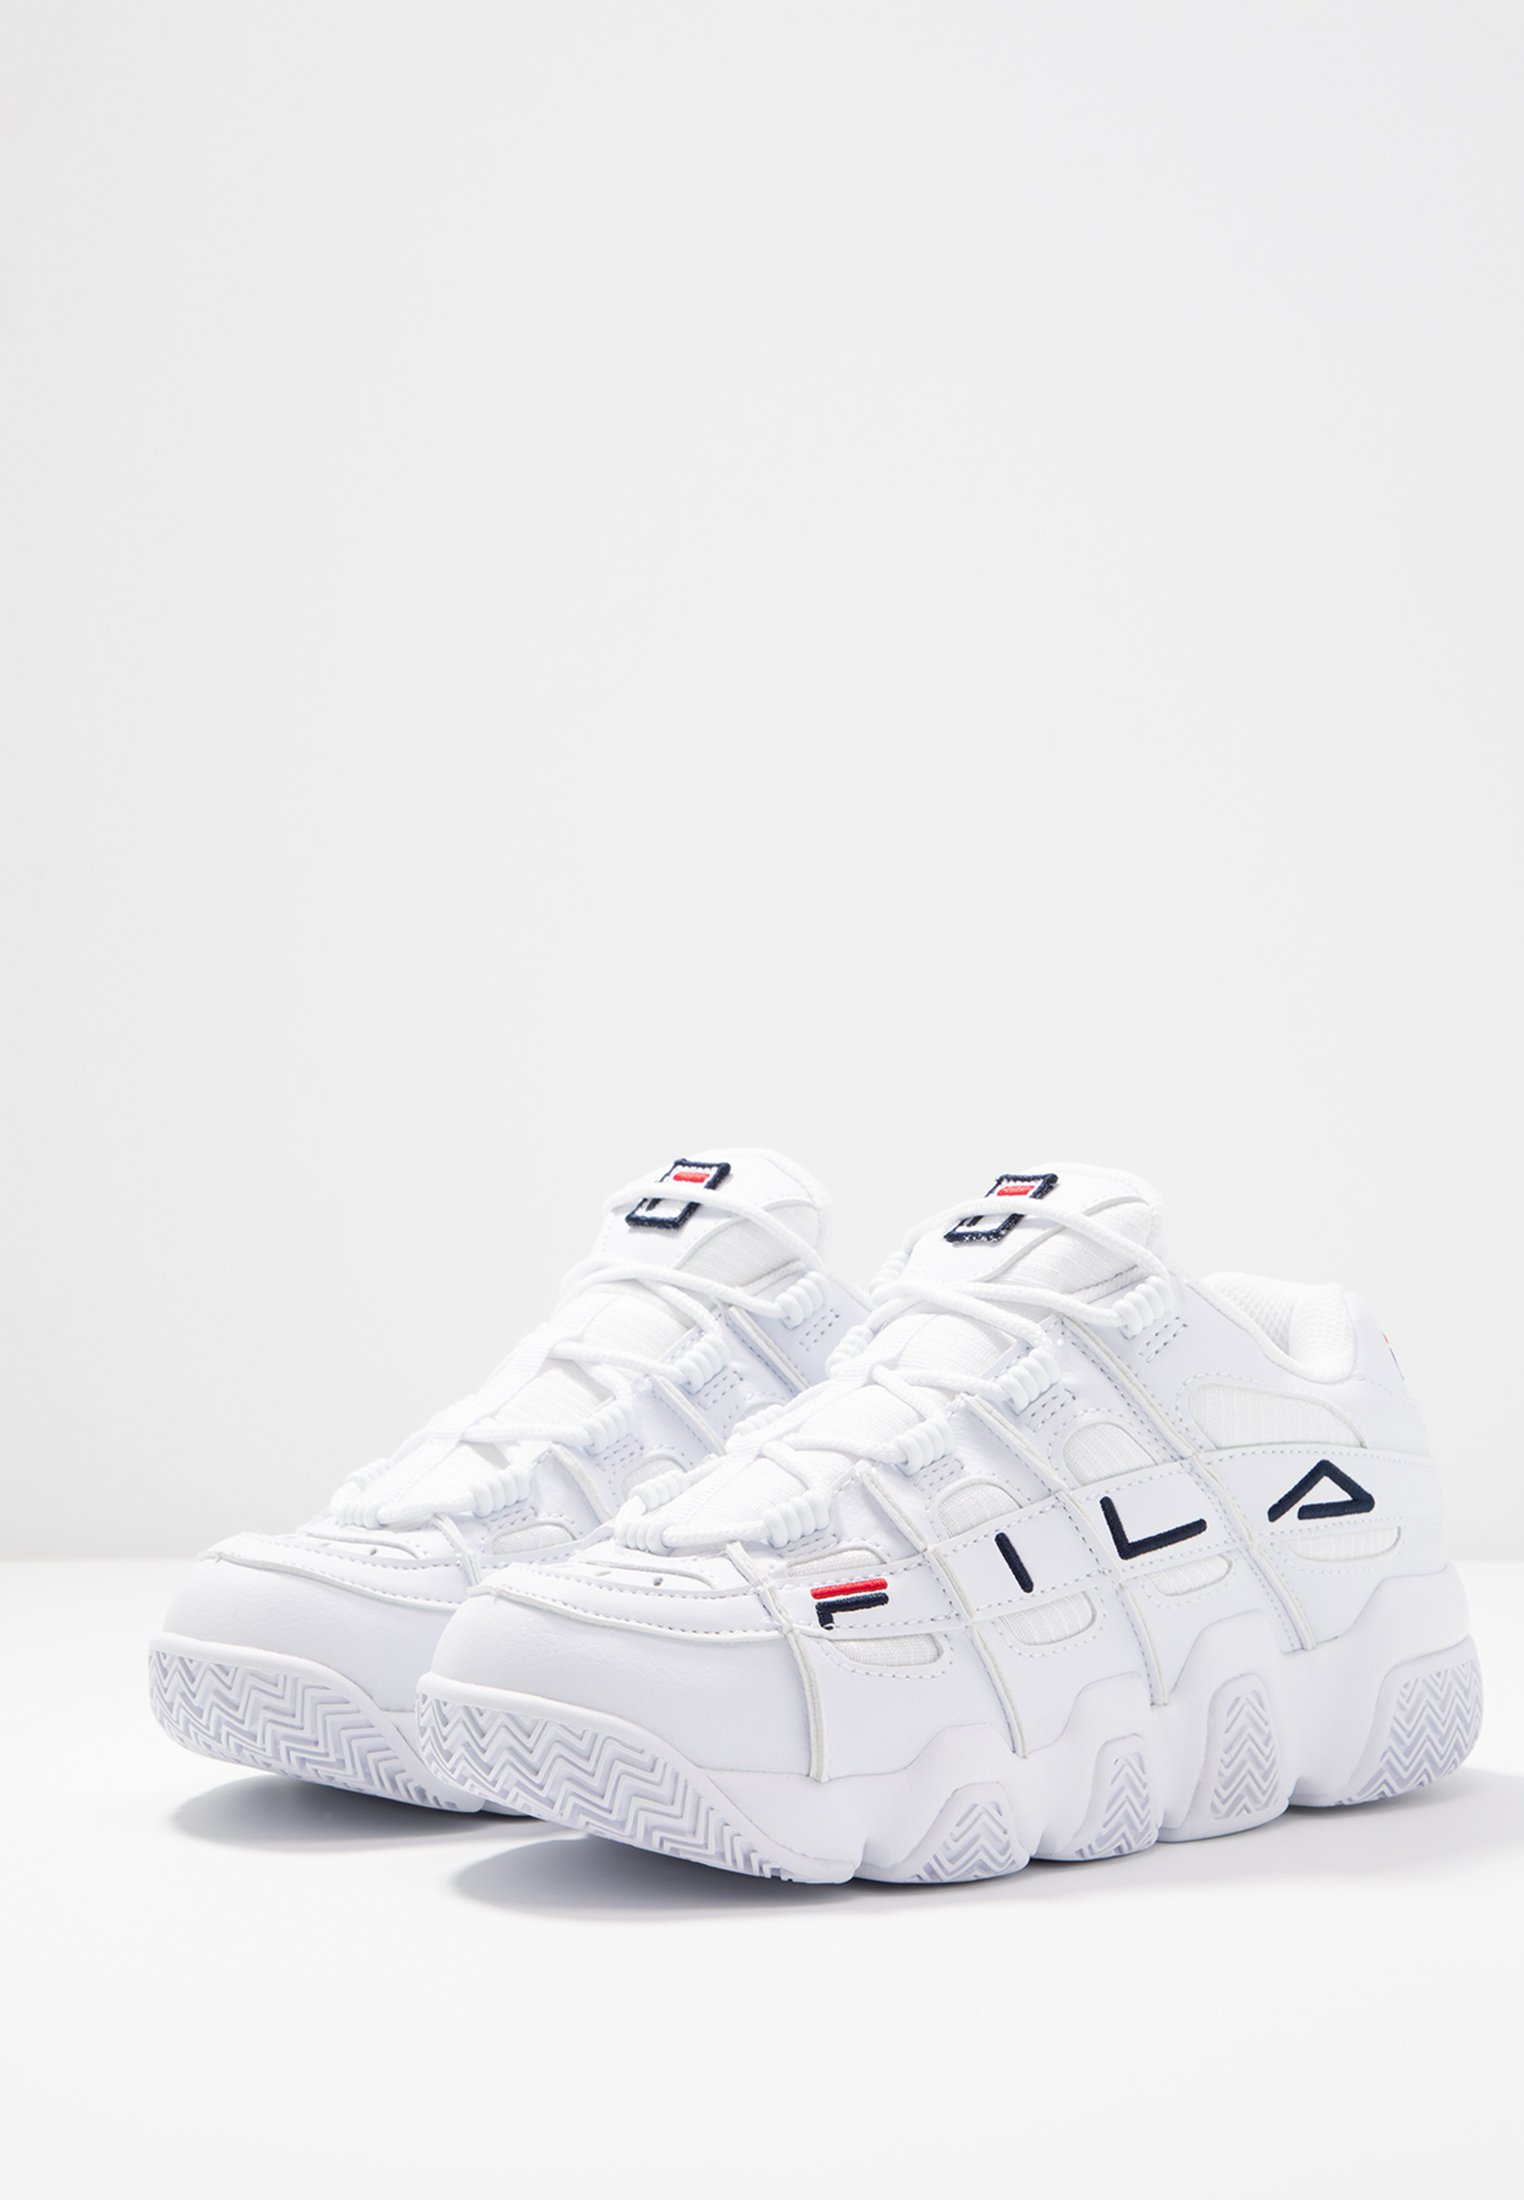 Fila UPROOT - Sneaker low - white/navy/red - Black Friday